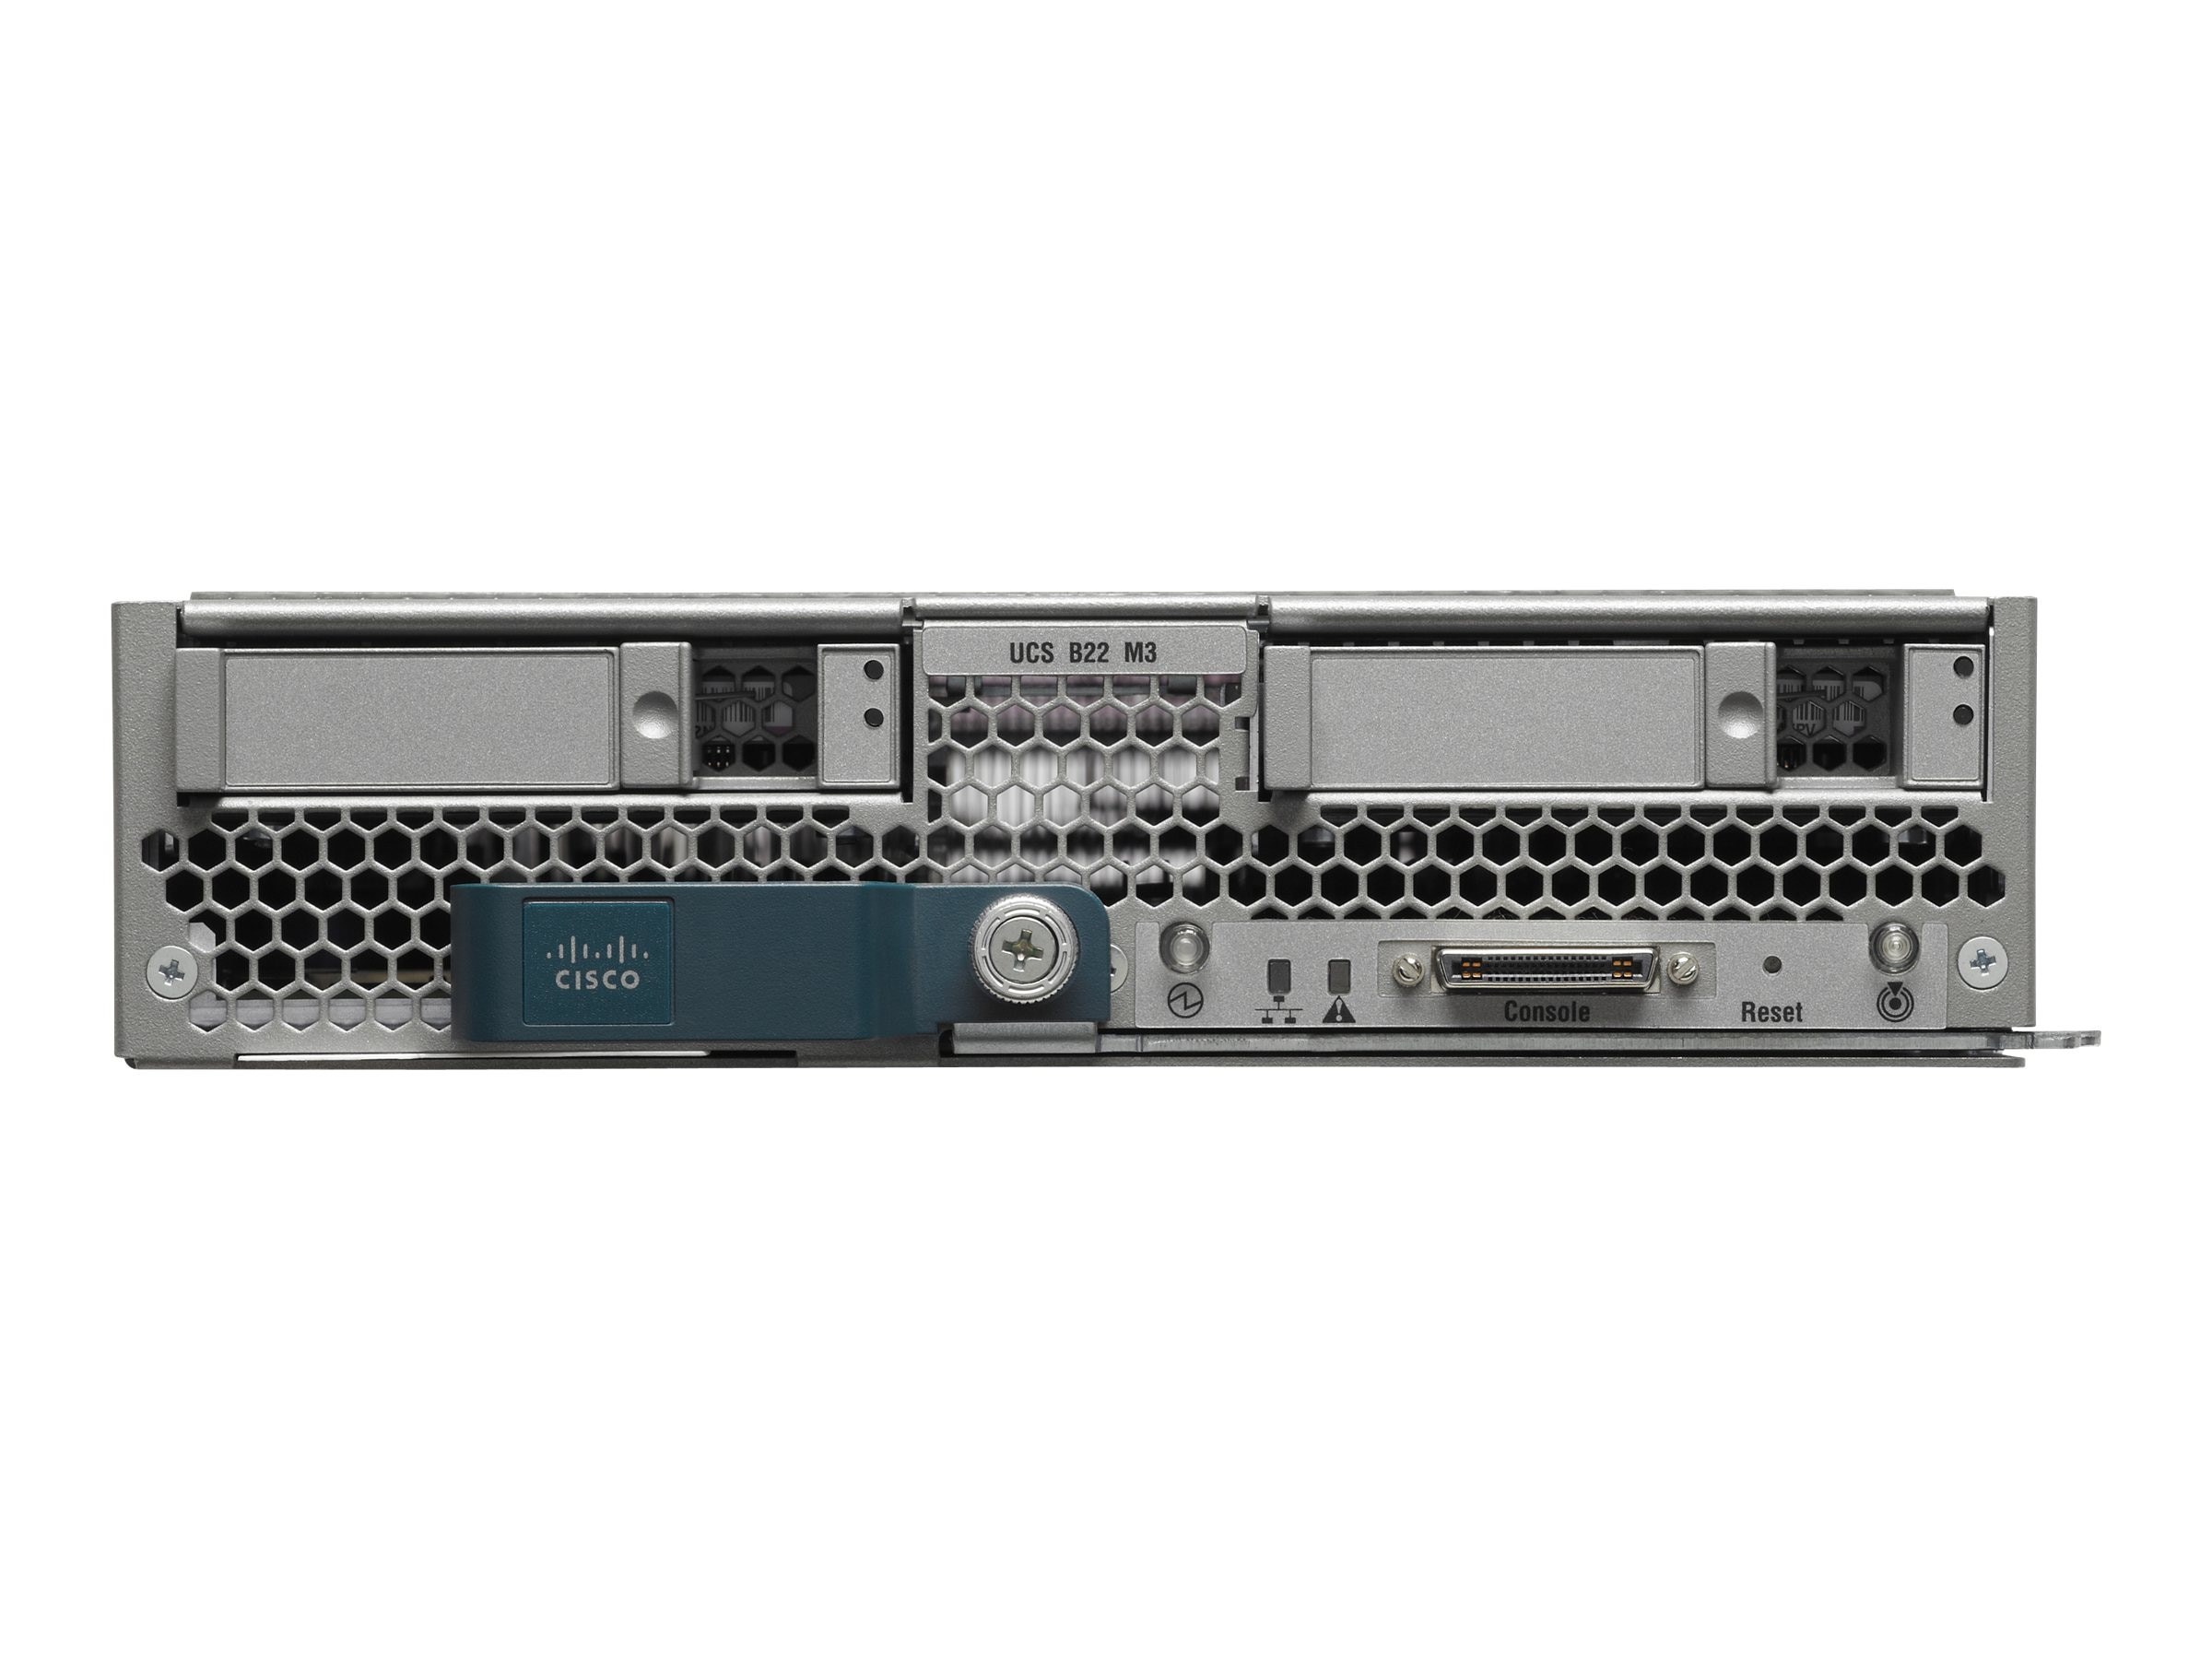 Cisco UCS B200 M3 Entry SmartPlay Expansion Pack (2x) Xeon E5-2609 v2 2.5GHz 64GB 2x2.5 Bays VIC1240